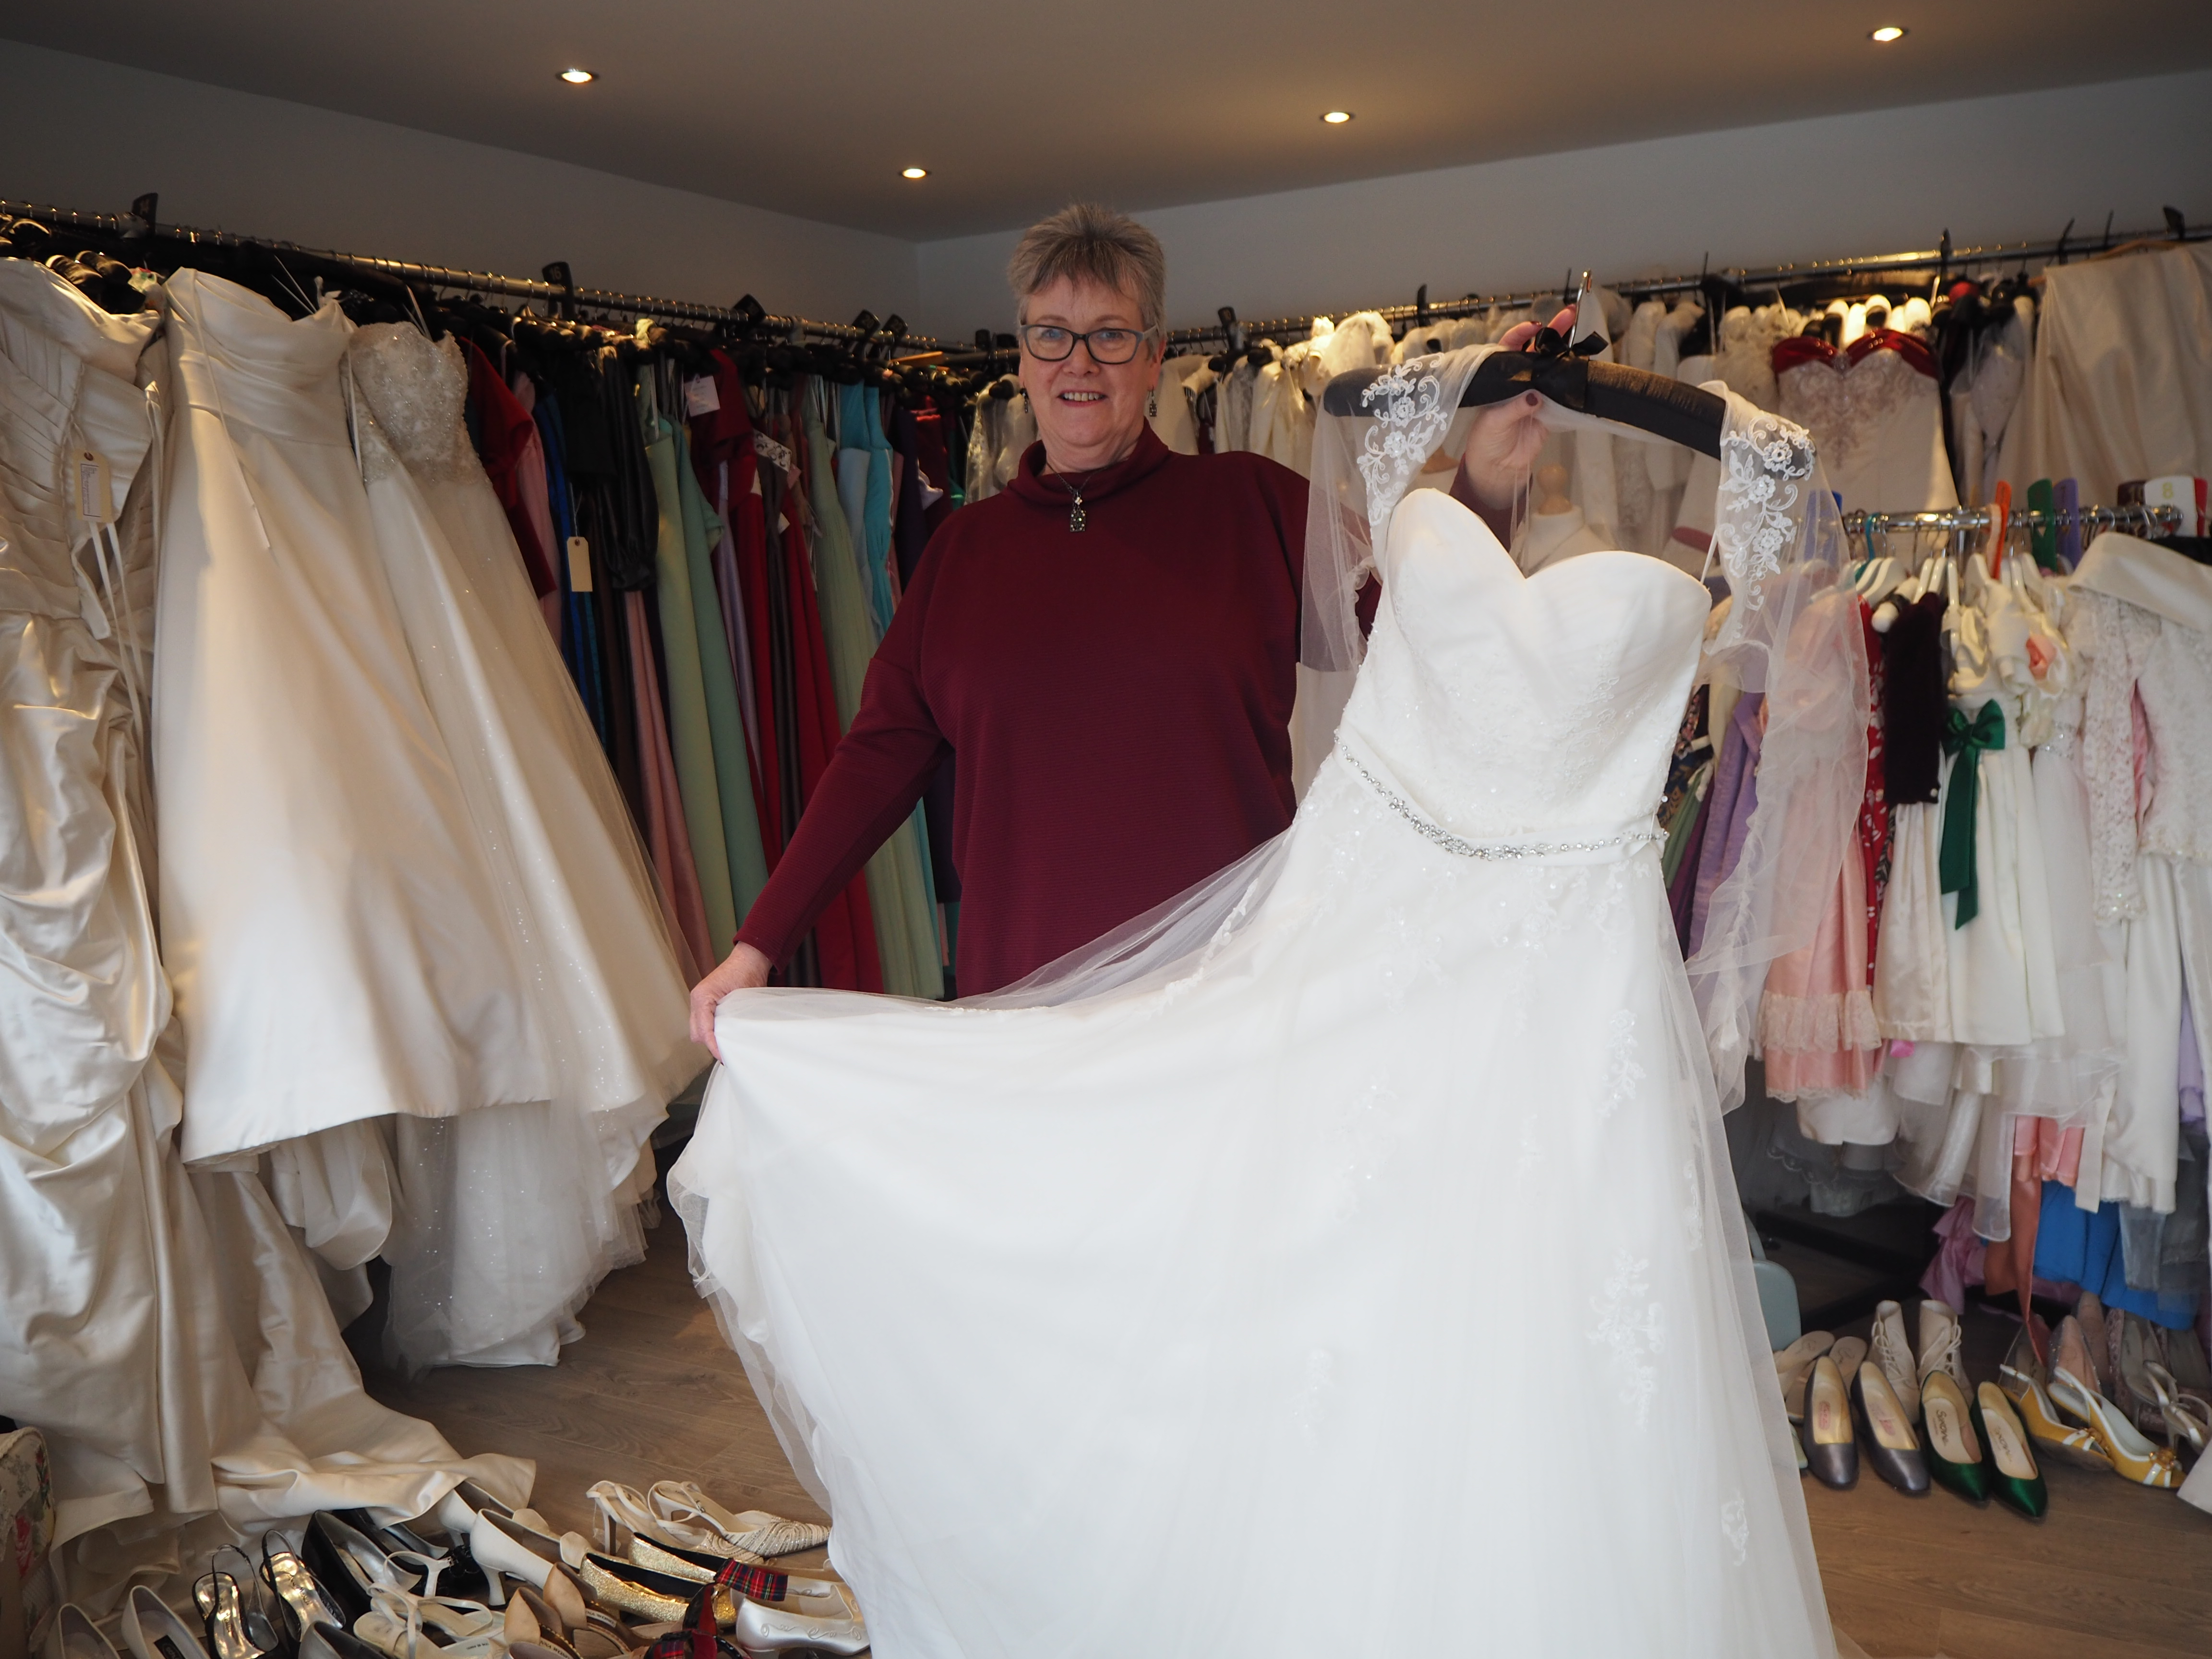 Angela with one of her wedding dresses